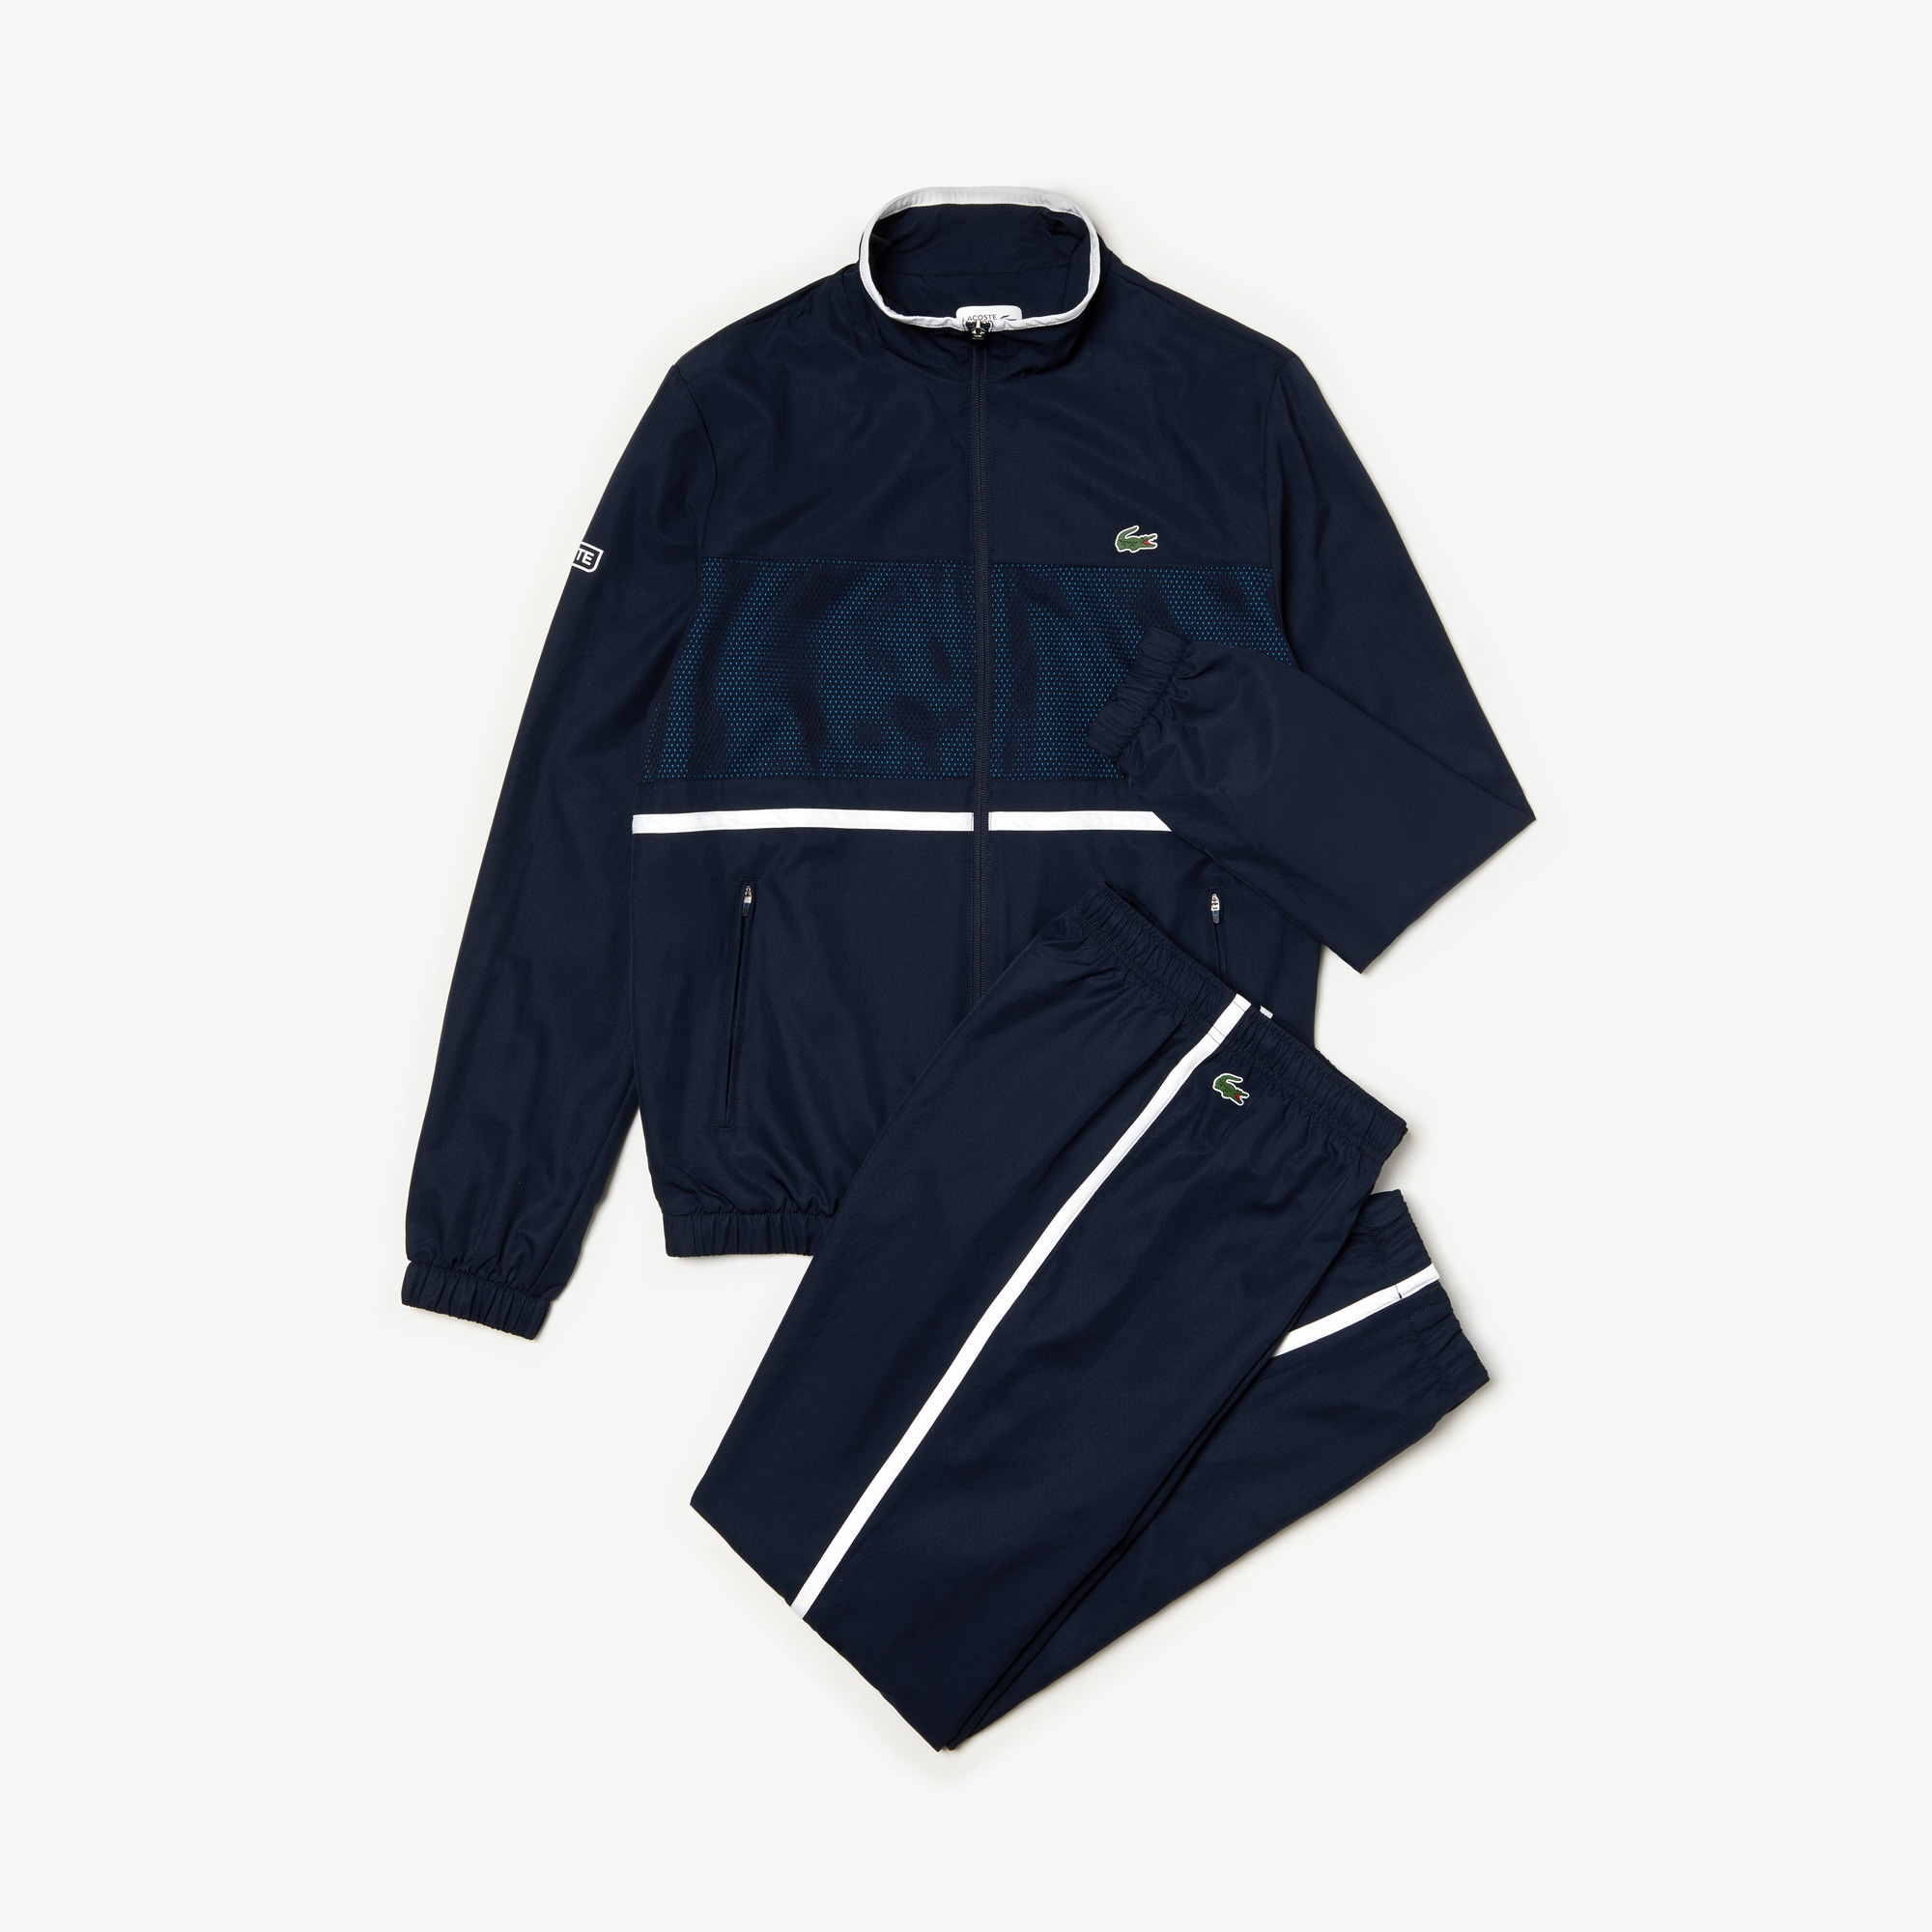 Men's Lacoste SPORT Contrast Bands And Mesh Panel Tennis Sweatsuit